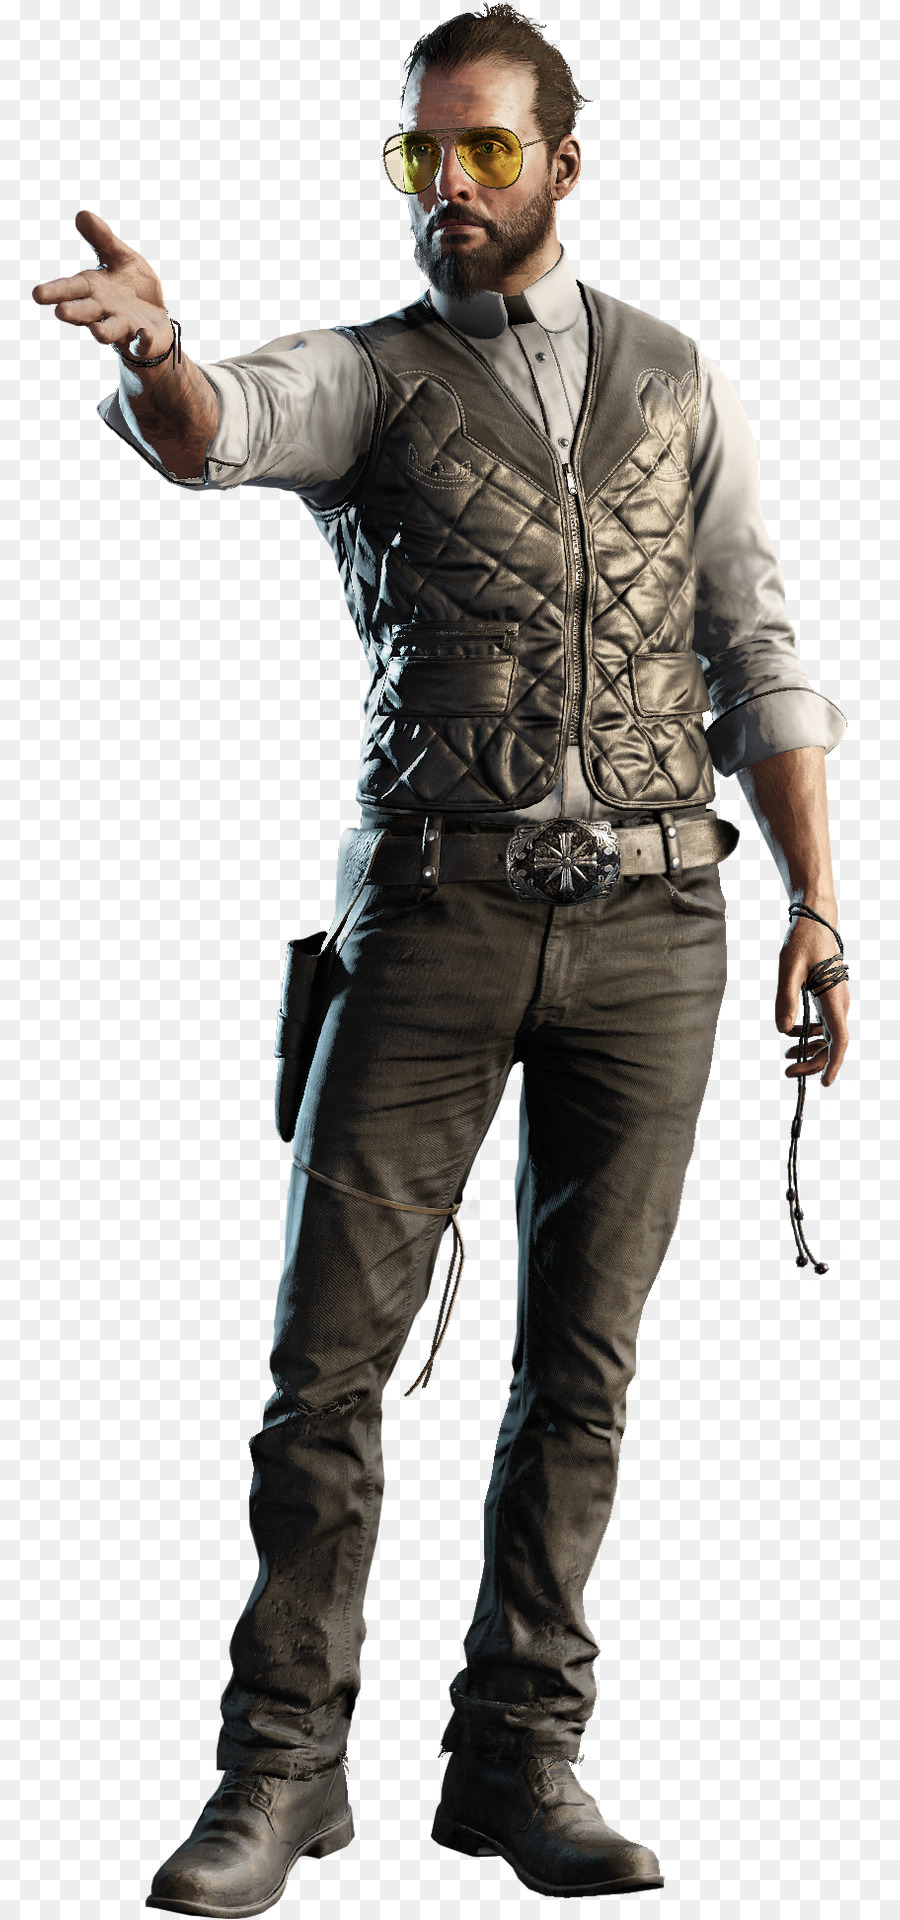 Far Cry 5 Png Free Far Cry 5 Png Transparent Images 42744 Pngio